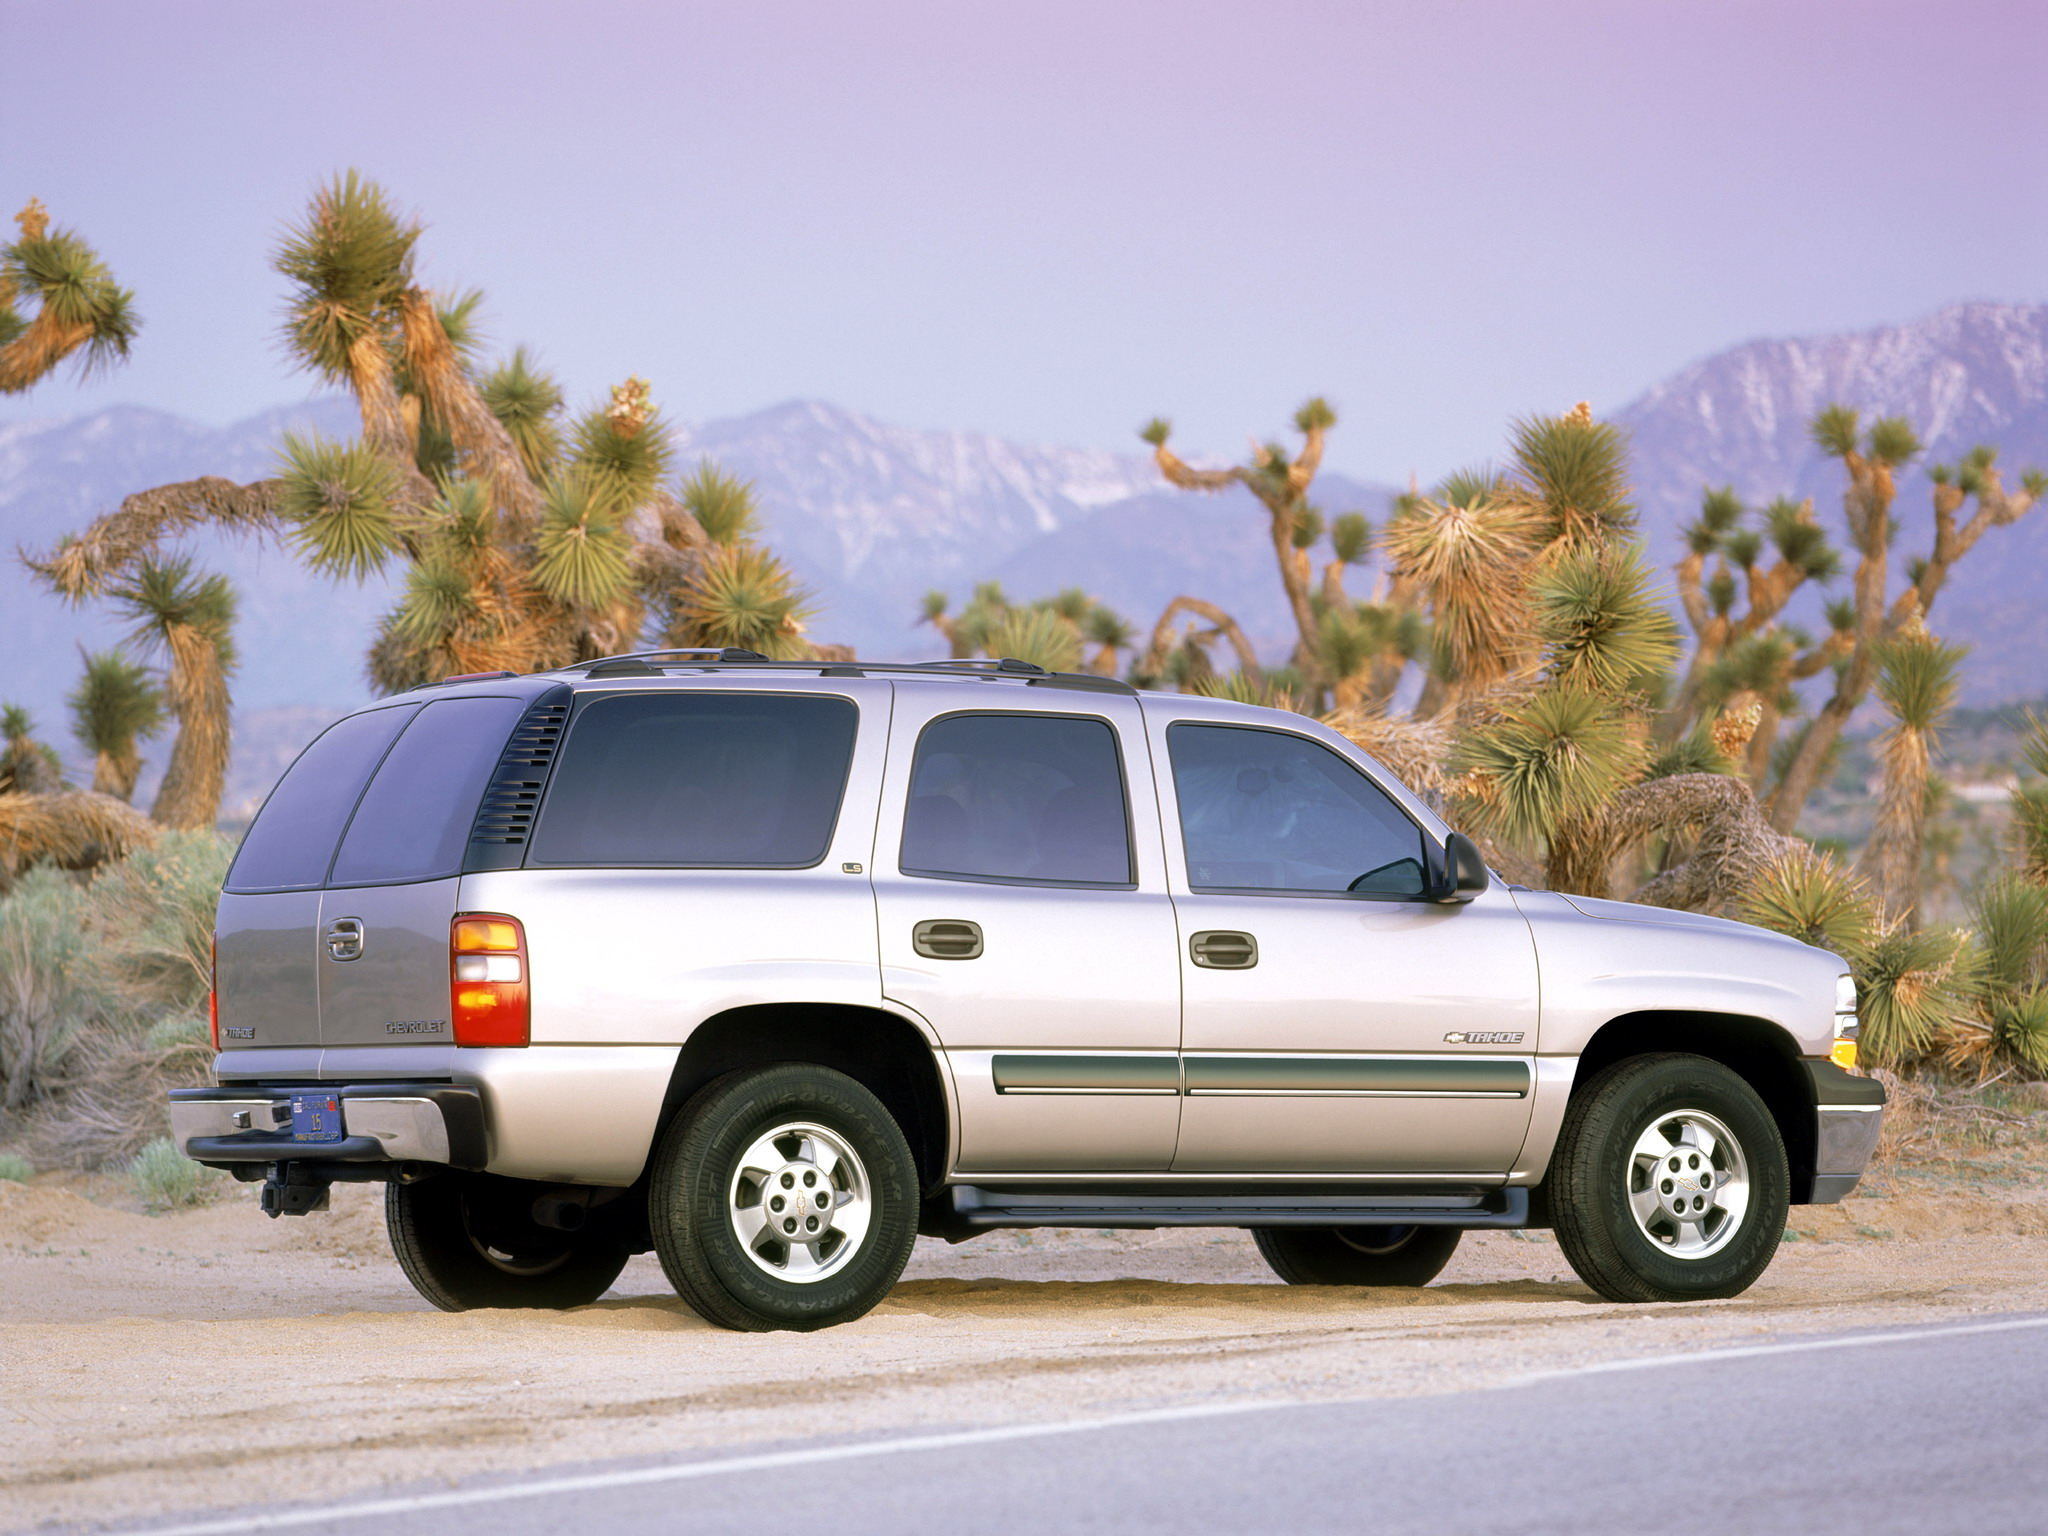 Cars chevrolet tahoe (gmt840) 2000 #5